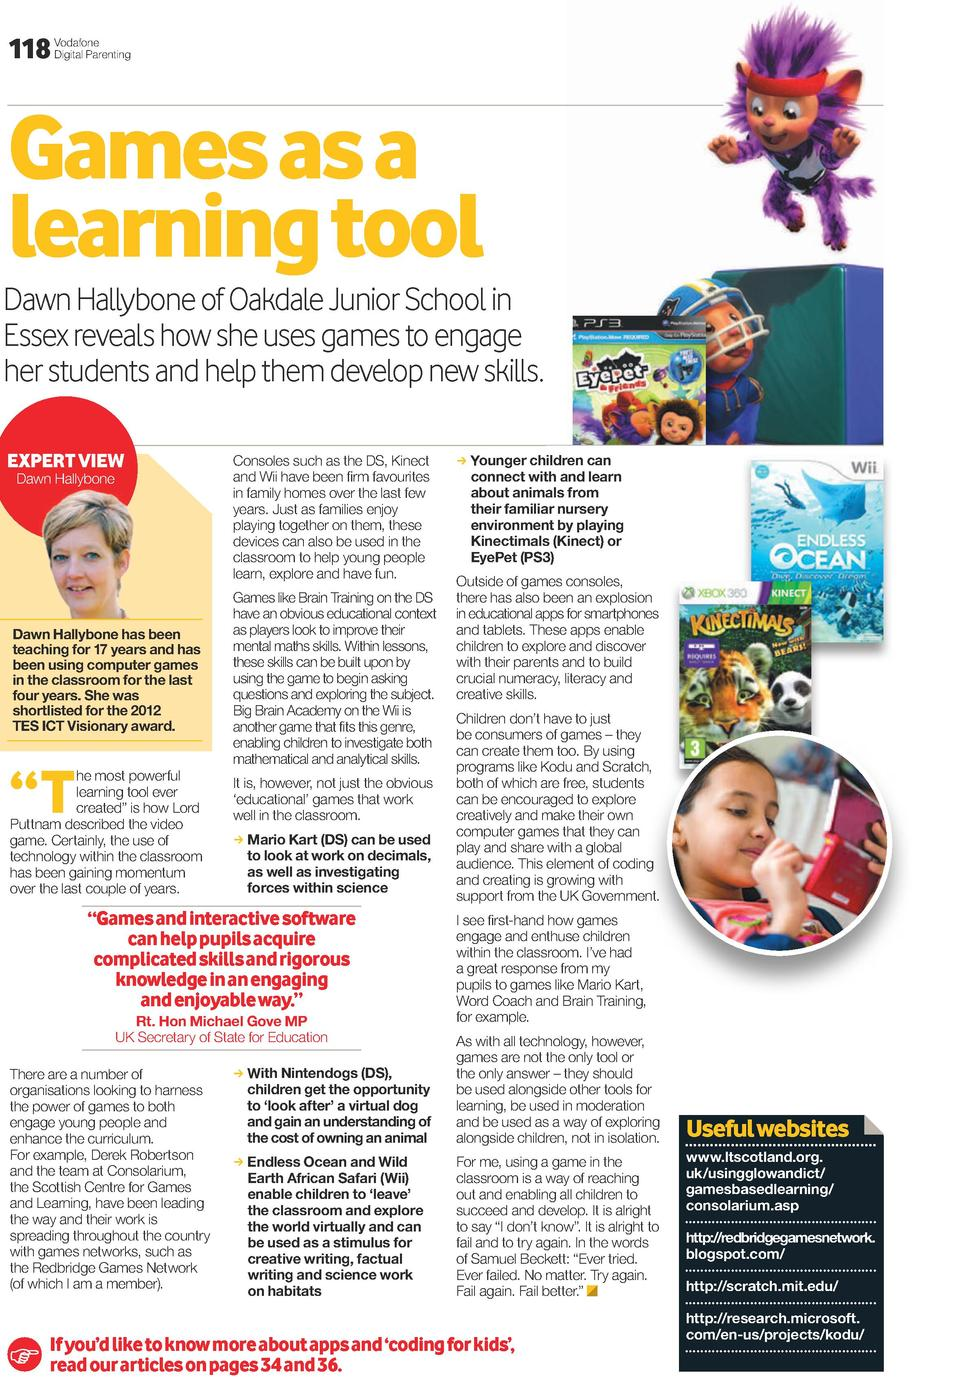 118  Vodafone Digital Parenting  games as a learning tool Dawn Hallybone of Oakdale Junior School in Essex reveals how she...